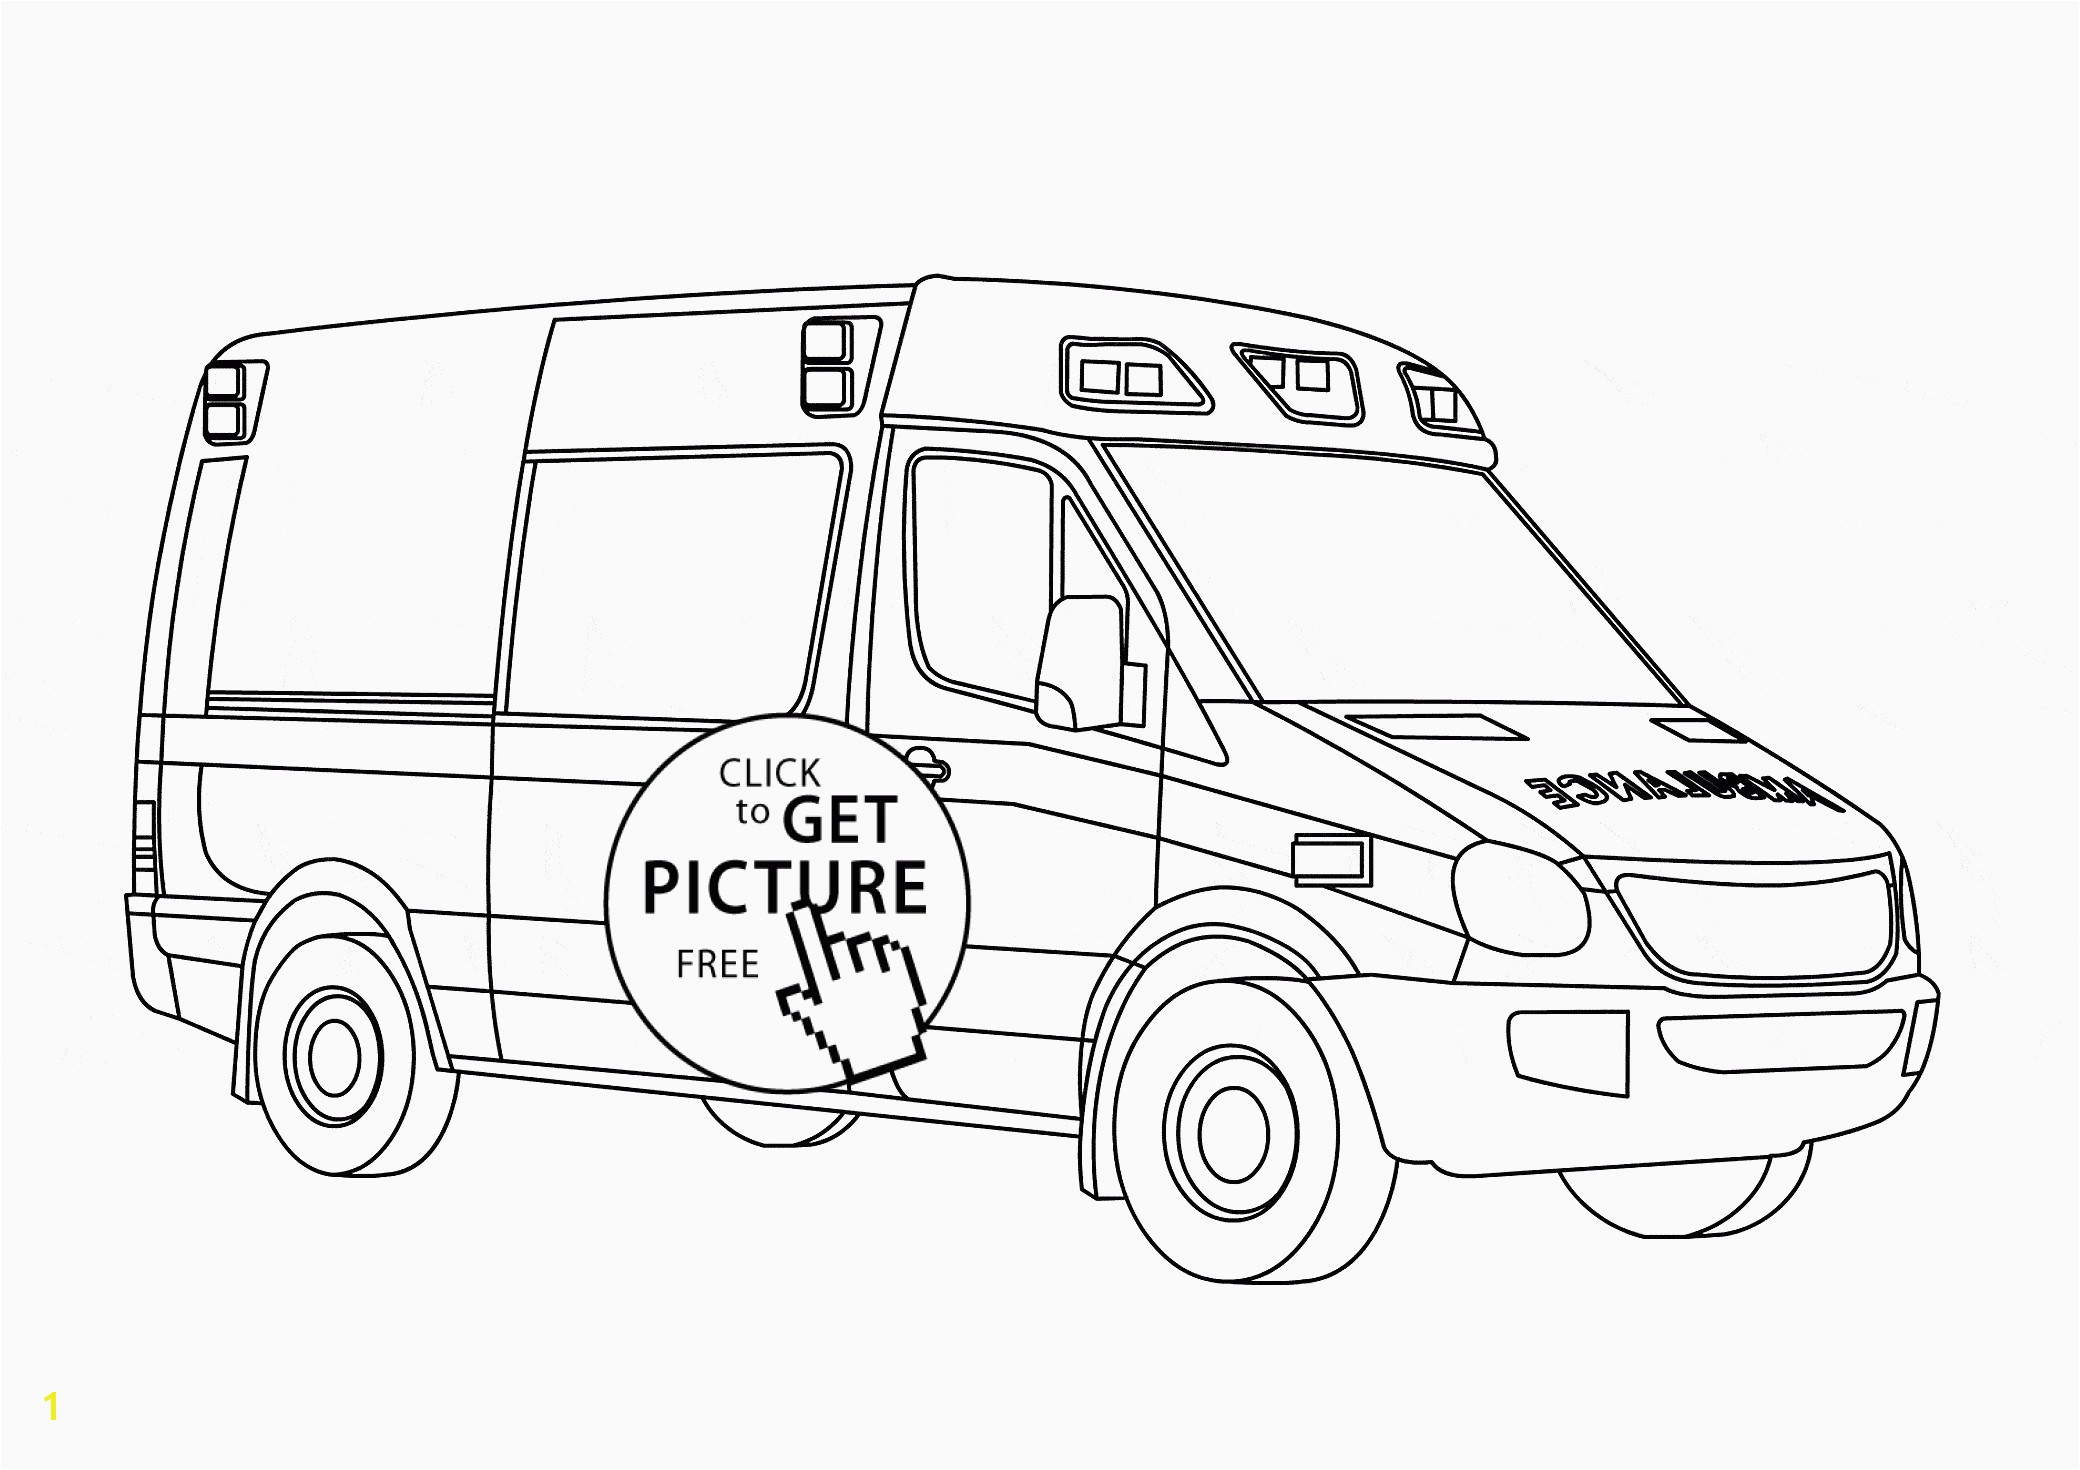 Vehicle Coloring Pages for Kids Coloring Pages Airplanes Military Elegant Lego Ambulance Car